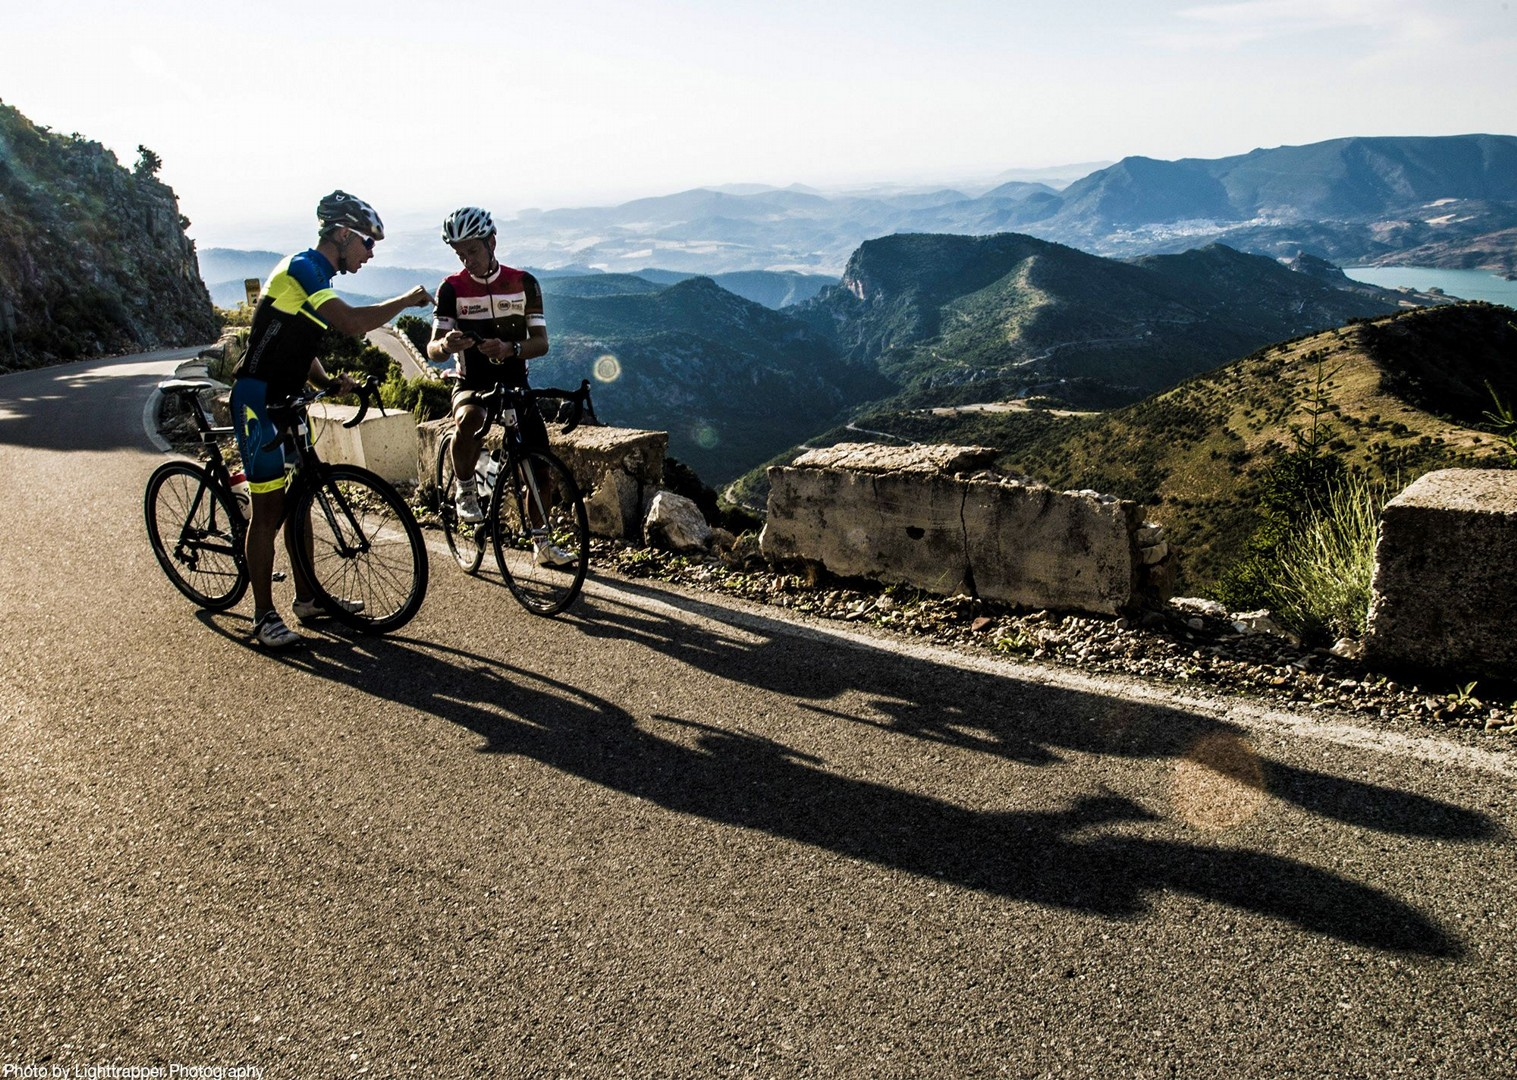 make-friends-saddle-skedaddle-road-cycling-guided-holiday.jpg - Southern Spain - Andalucia - Los Pueblos Blancos - Road Cycling